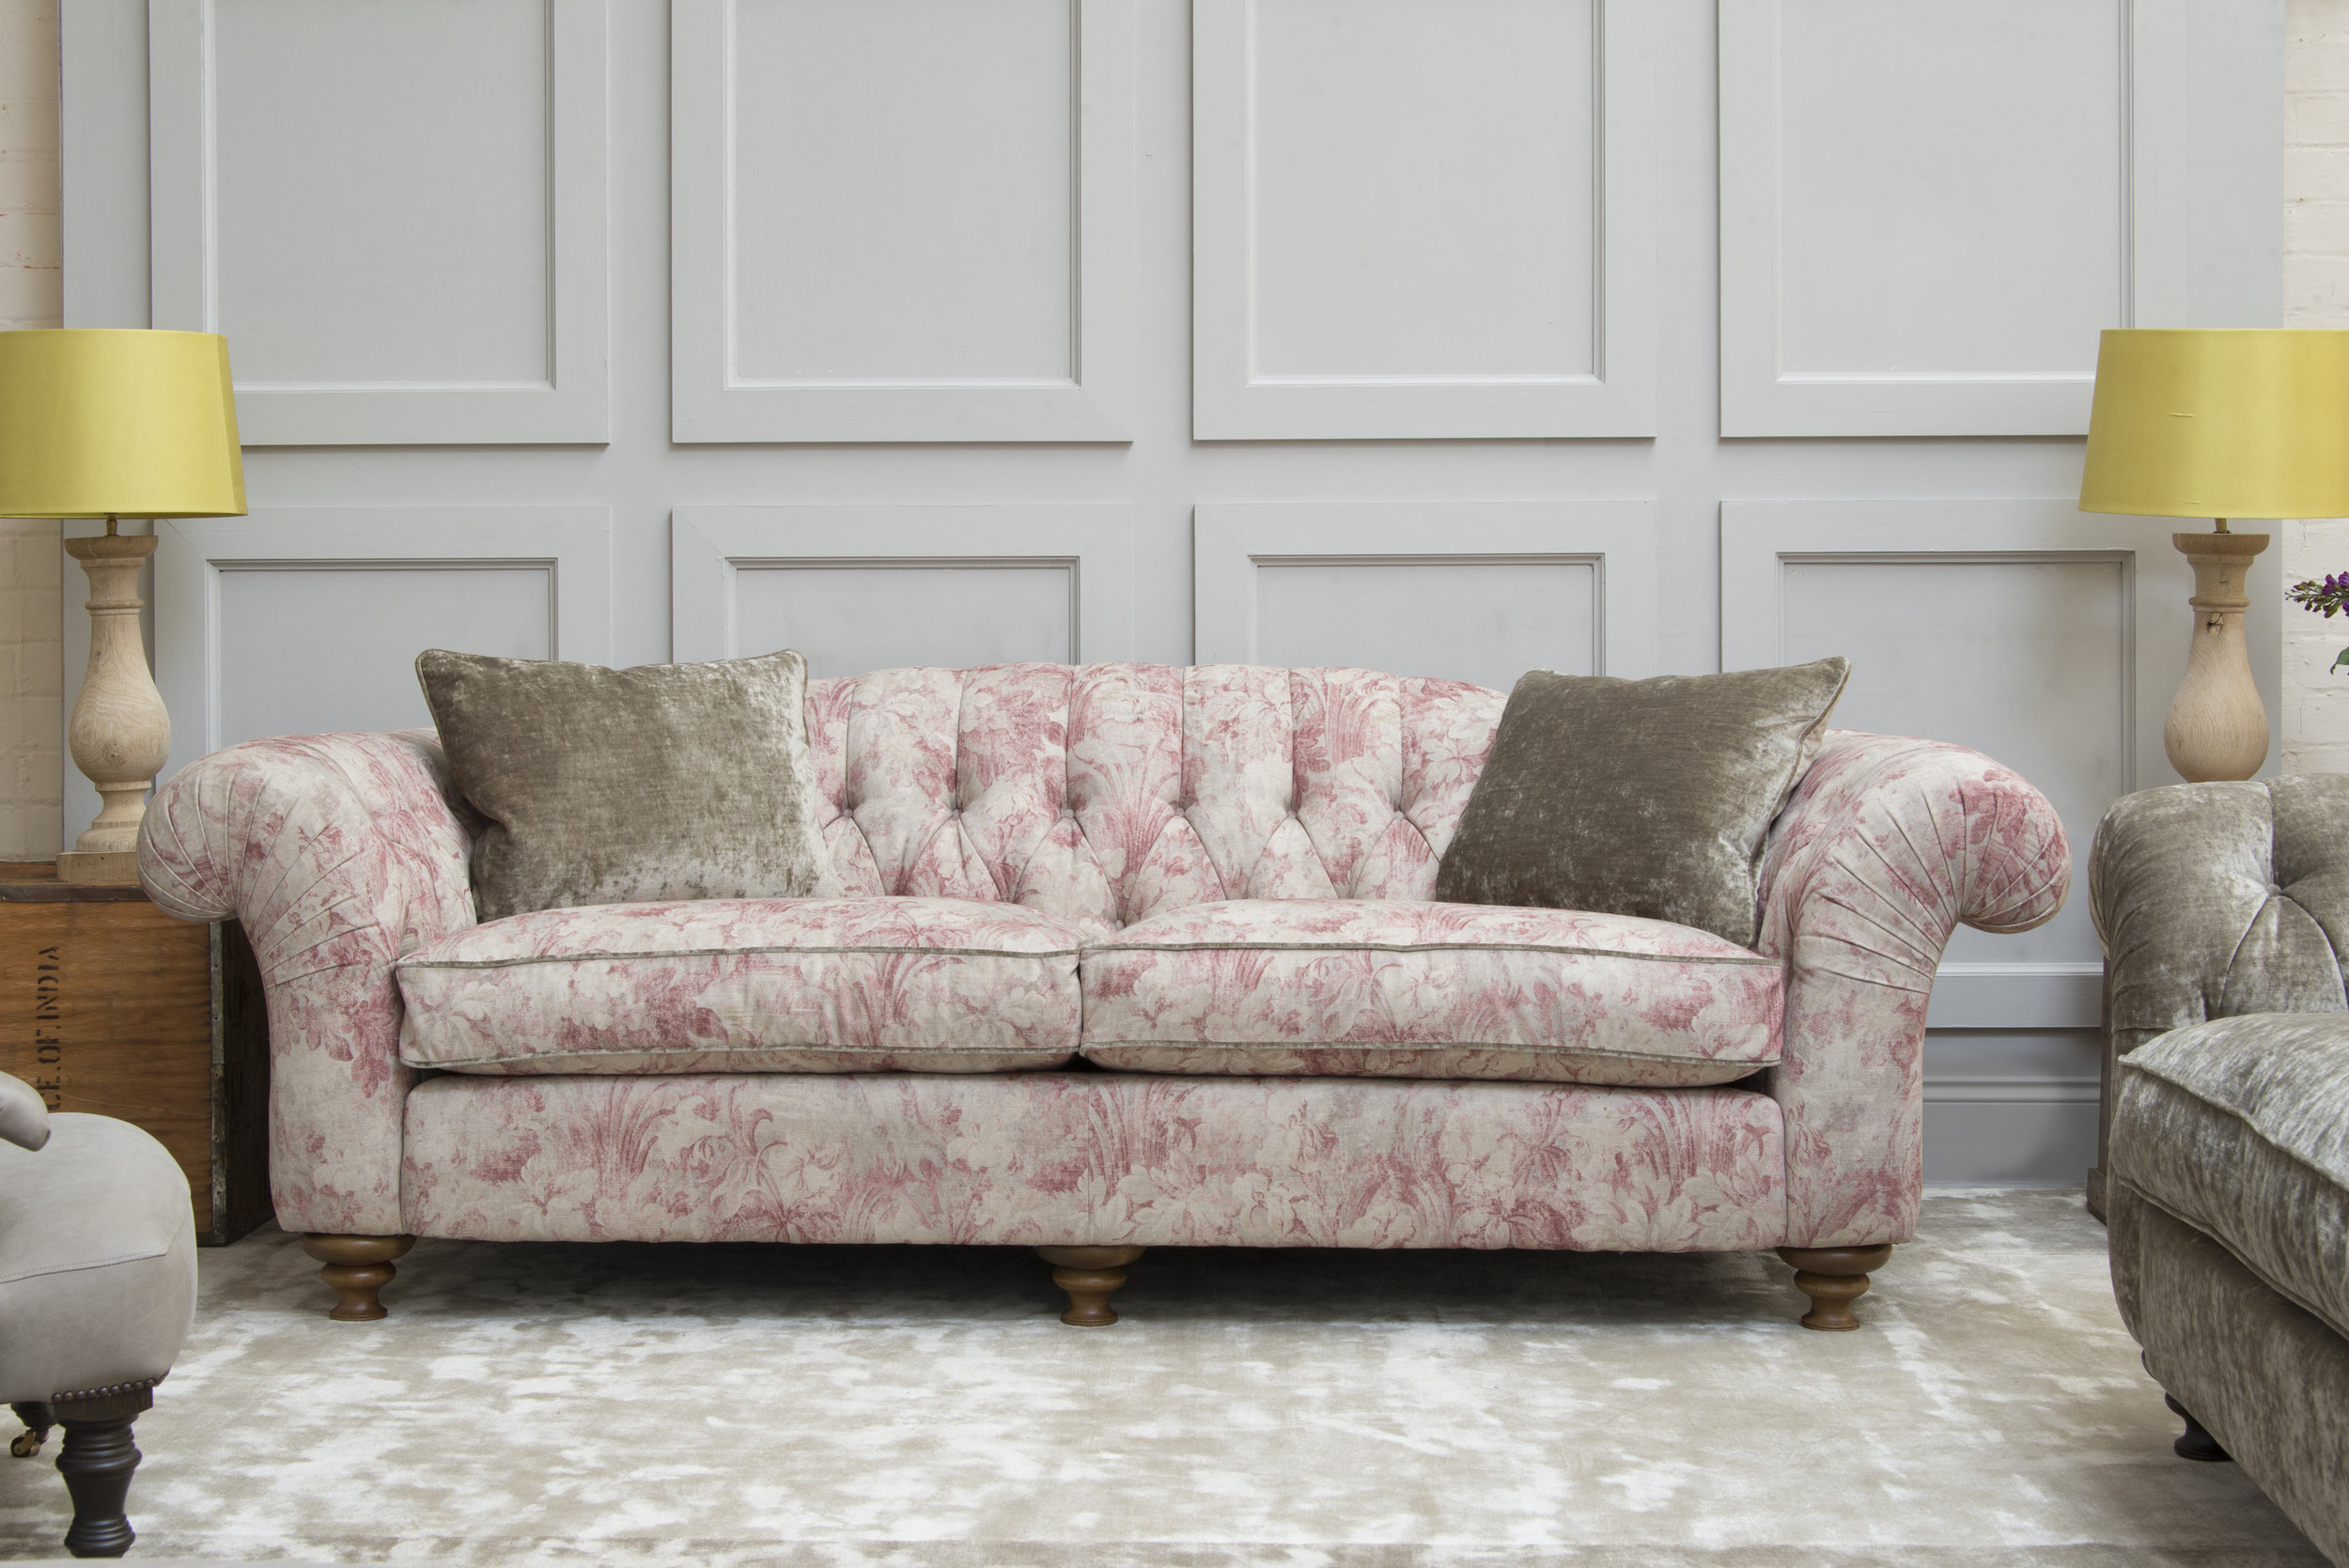 Bloomsbury Sofa  Prices start from £3080